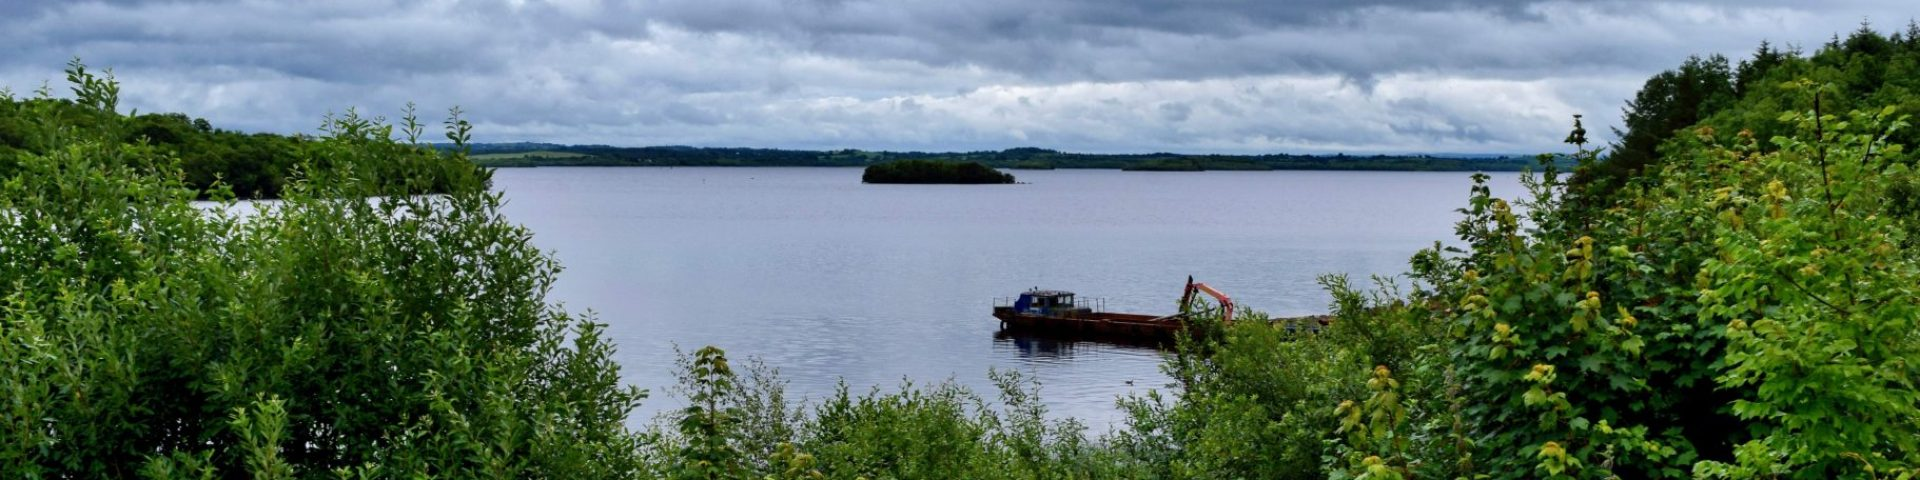 Ulster travel: Lough Erne, Co Fermanagh